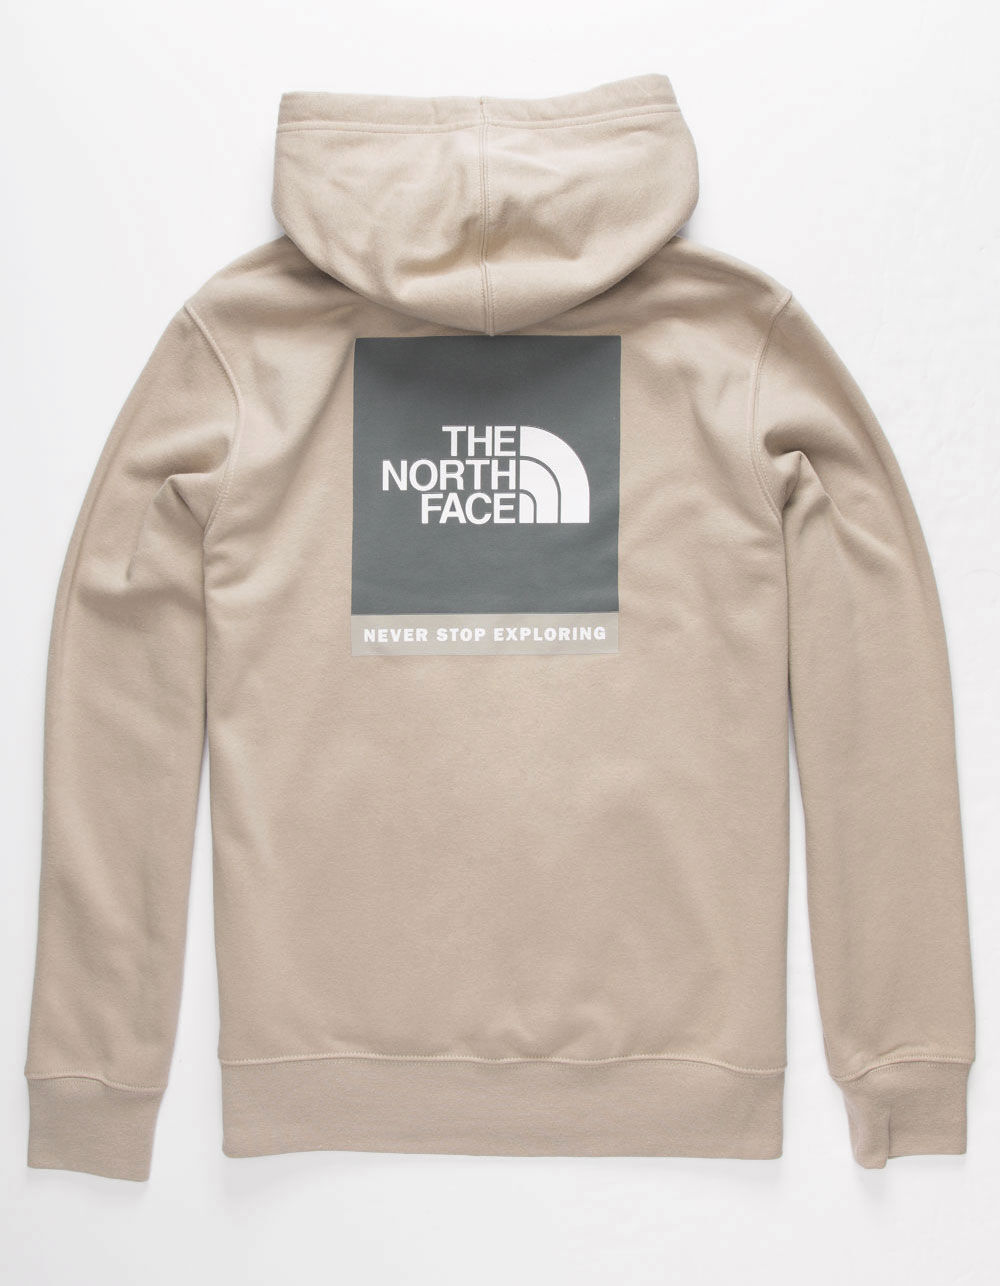 THE NORTH FACE Red Box Explorer Beige Hoodie